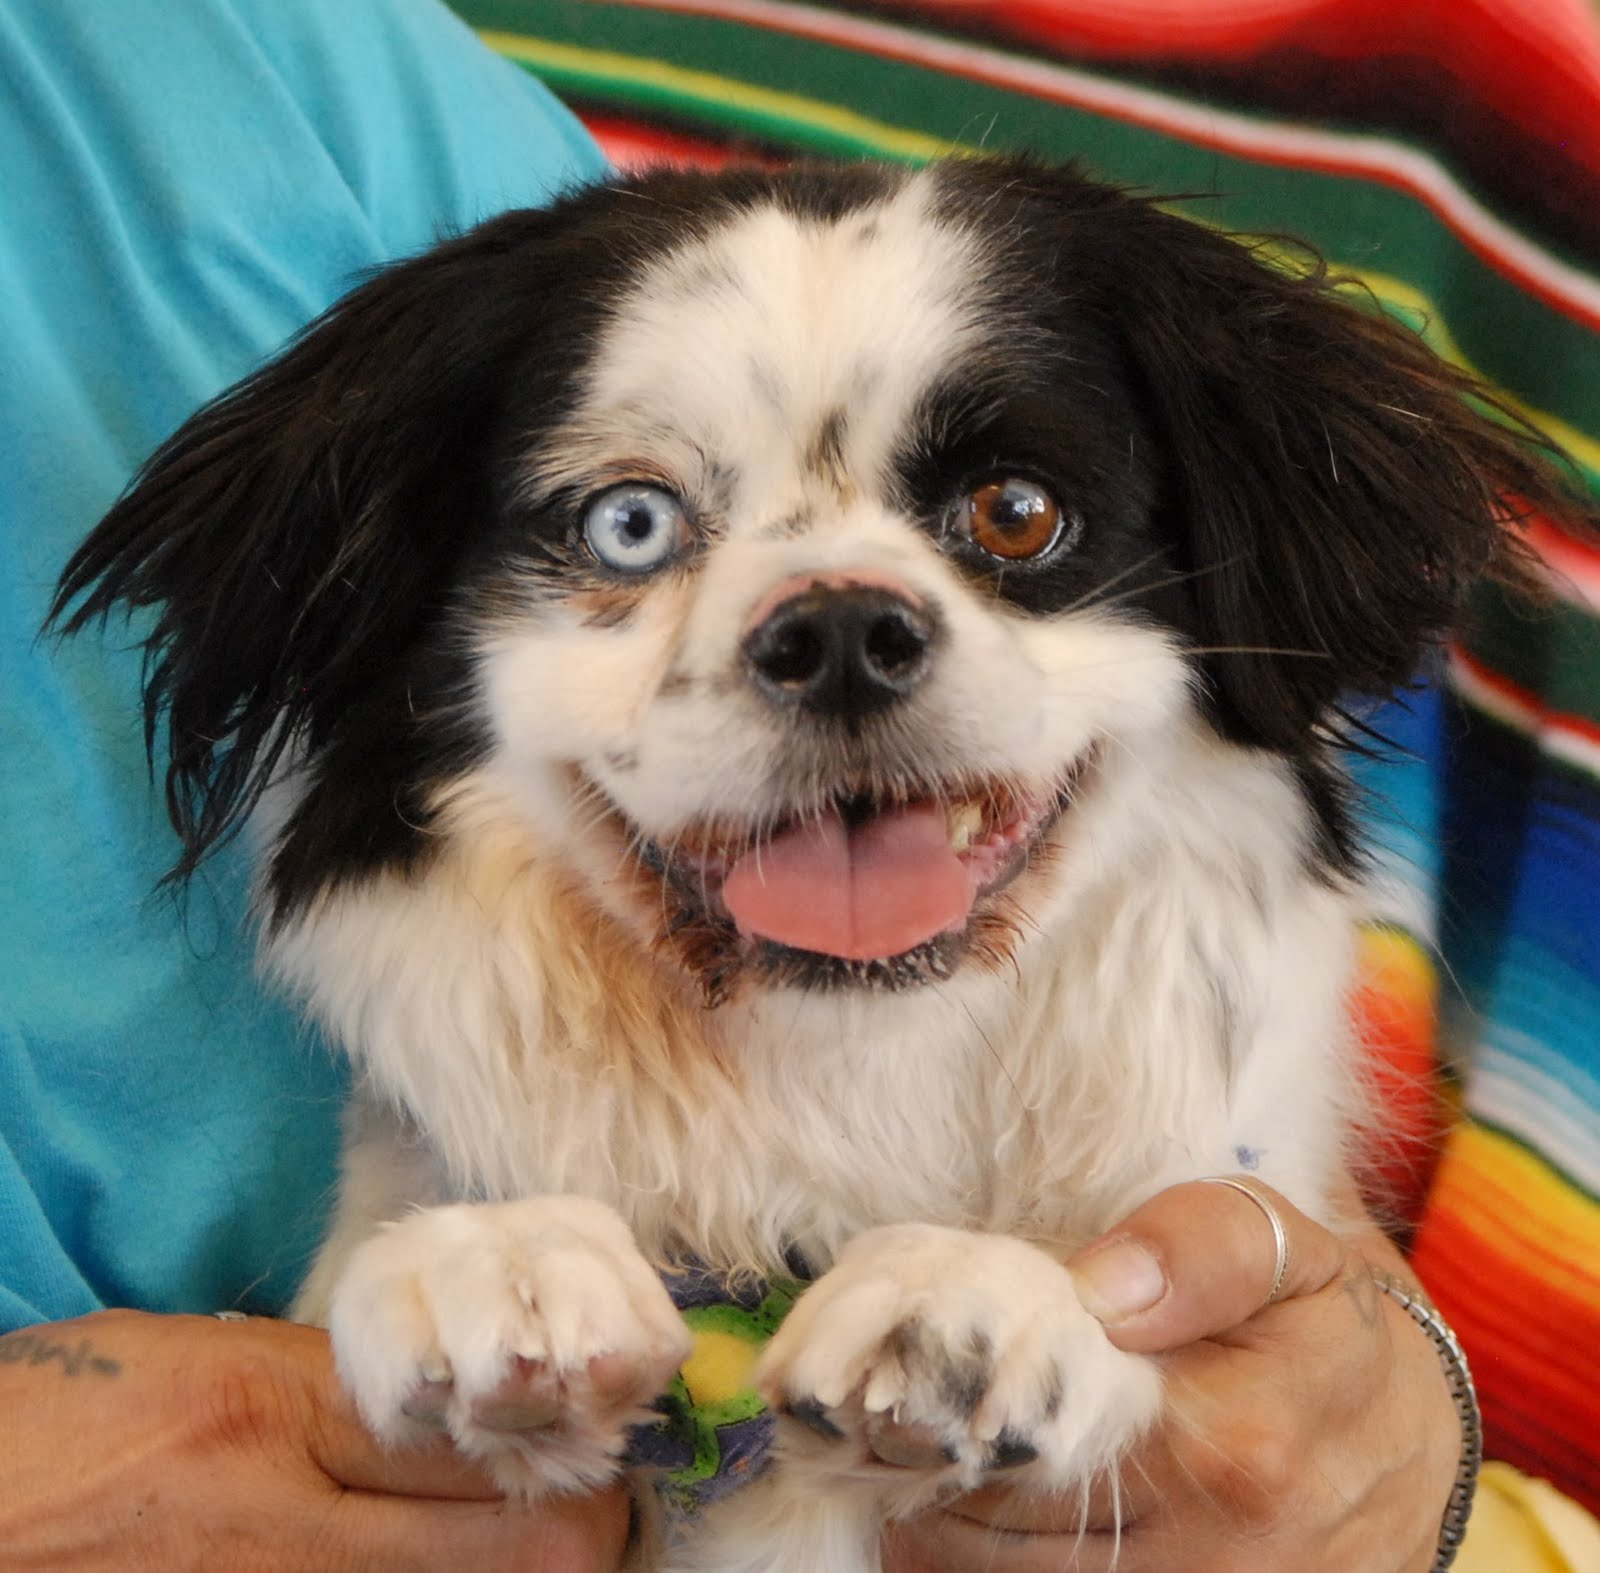 Boston Terrier Japanese Chin Mix | Dog Breeds Picture